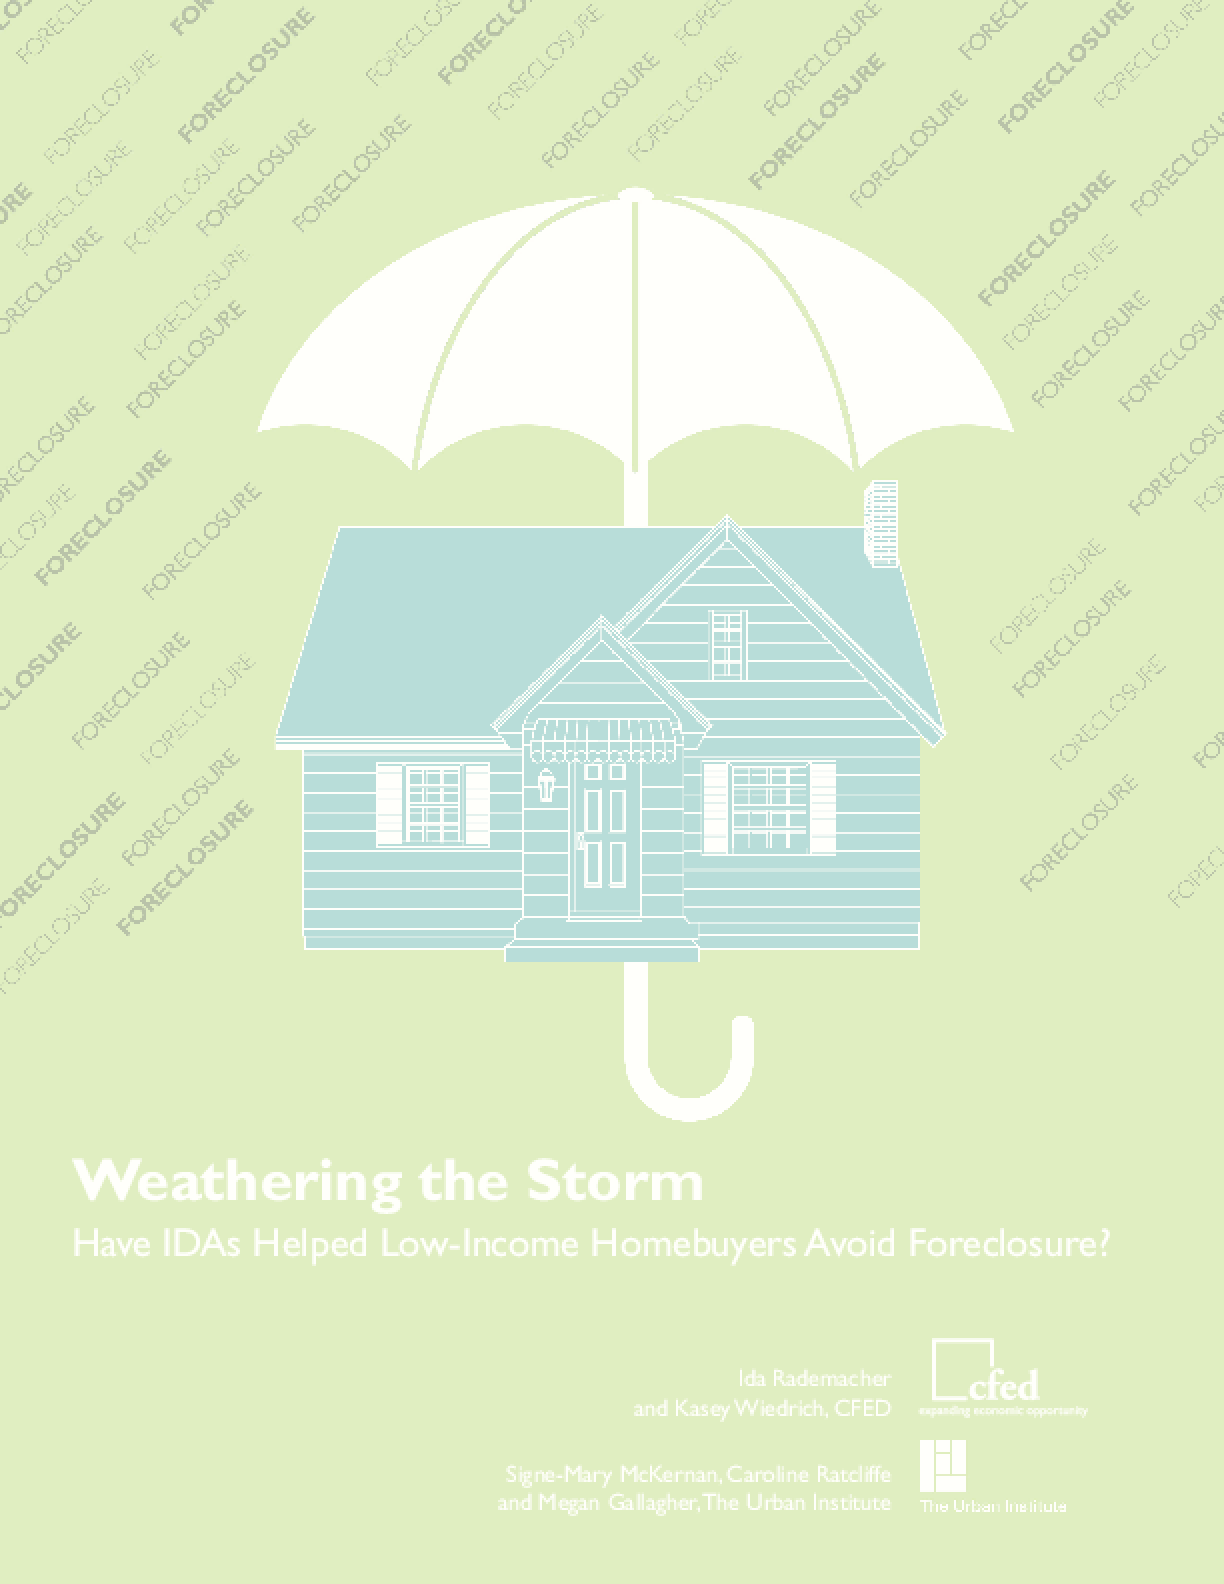 Weathering the Storm: Have IDAs Helped Low-Income Homebuyers Avoid Foreclosure?